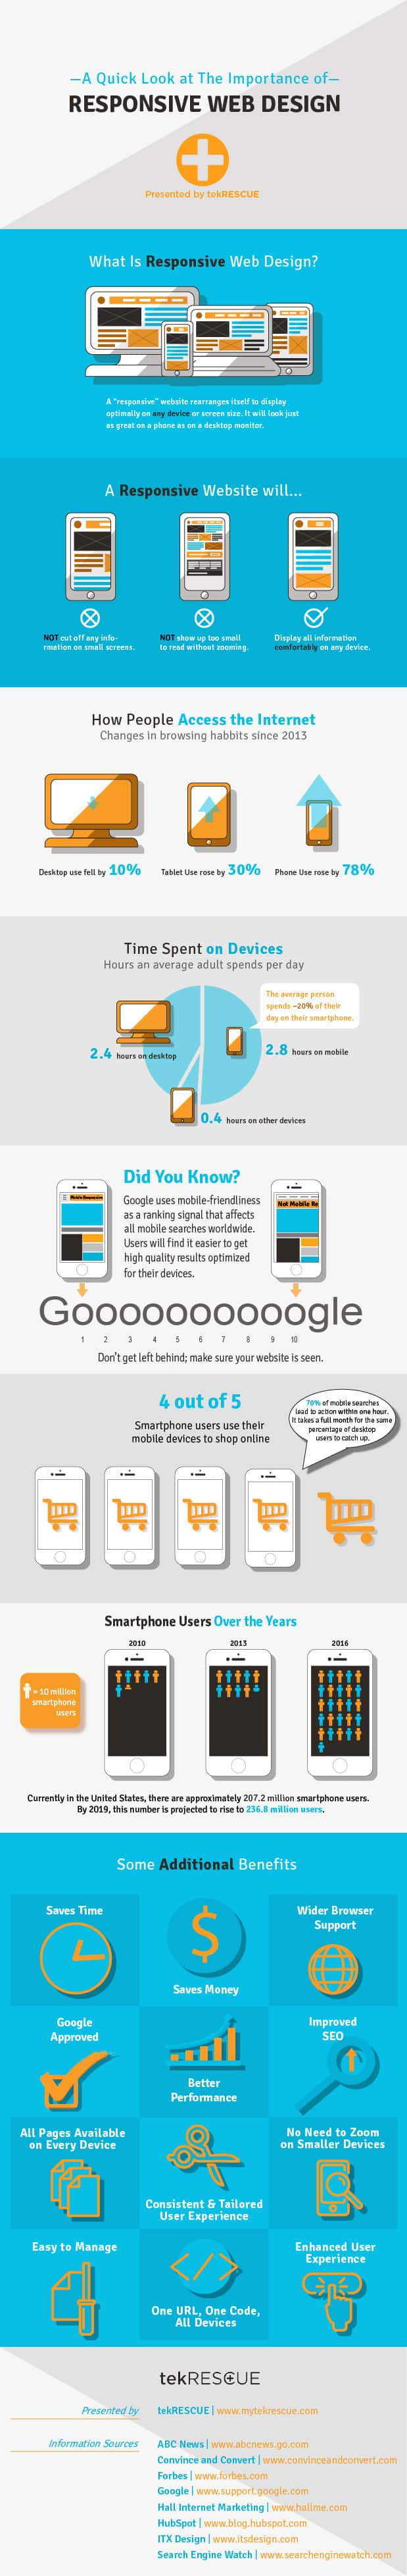 infographic_responsive-web-design1_full-length